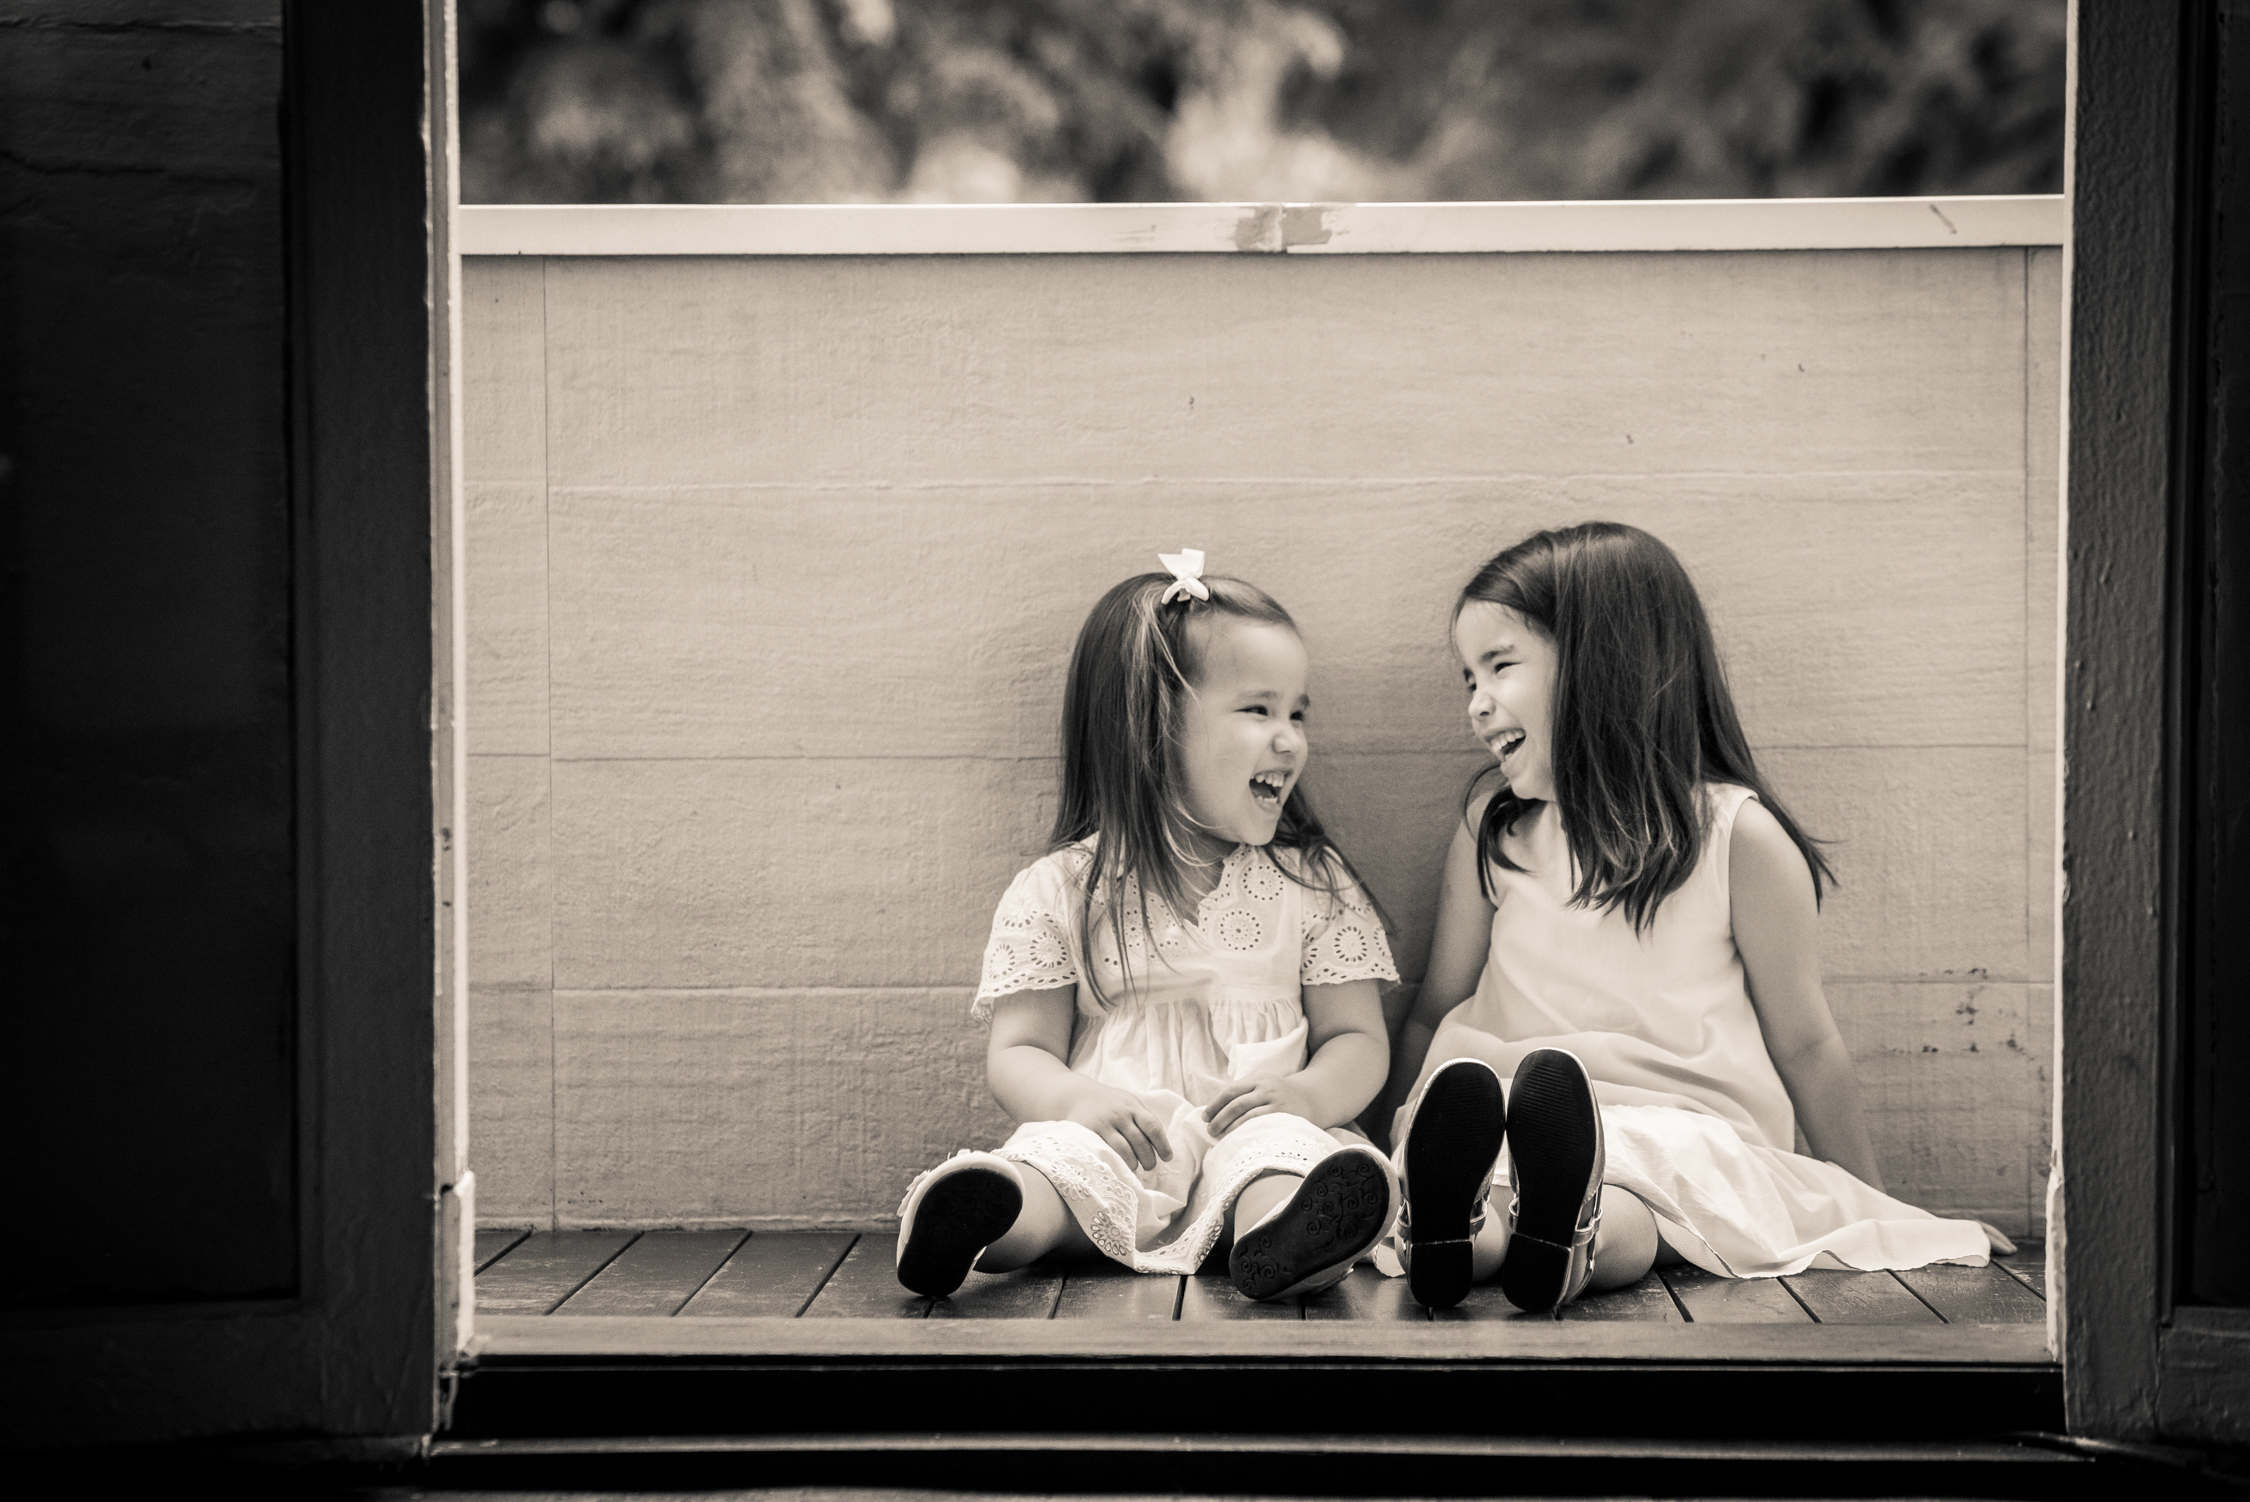 black and white photo of two girls smiling